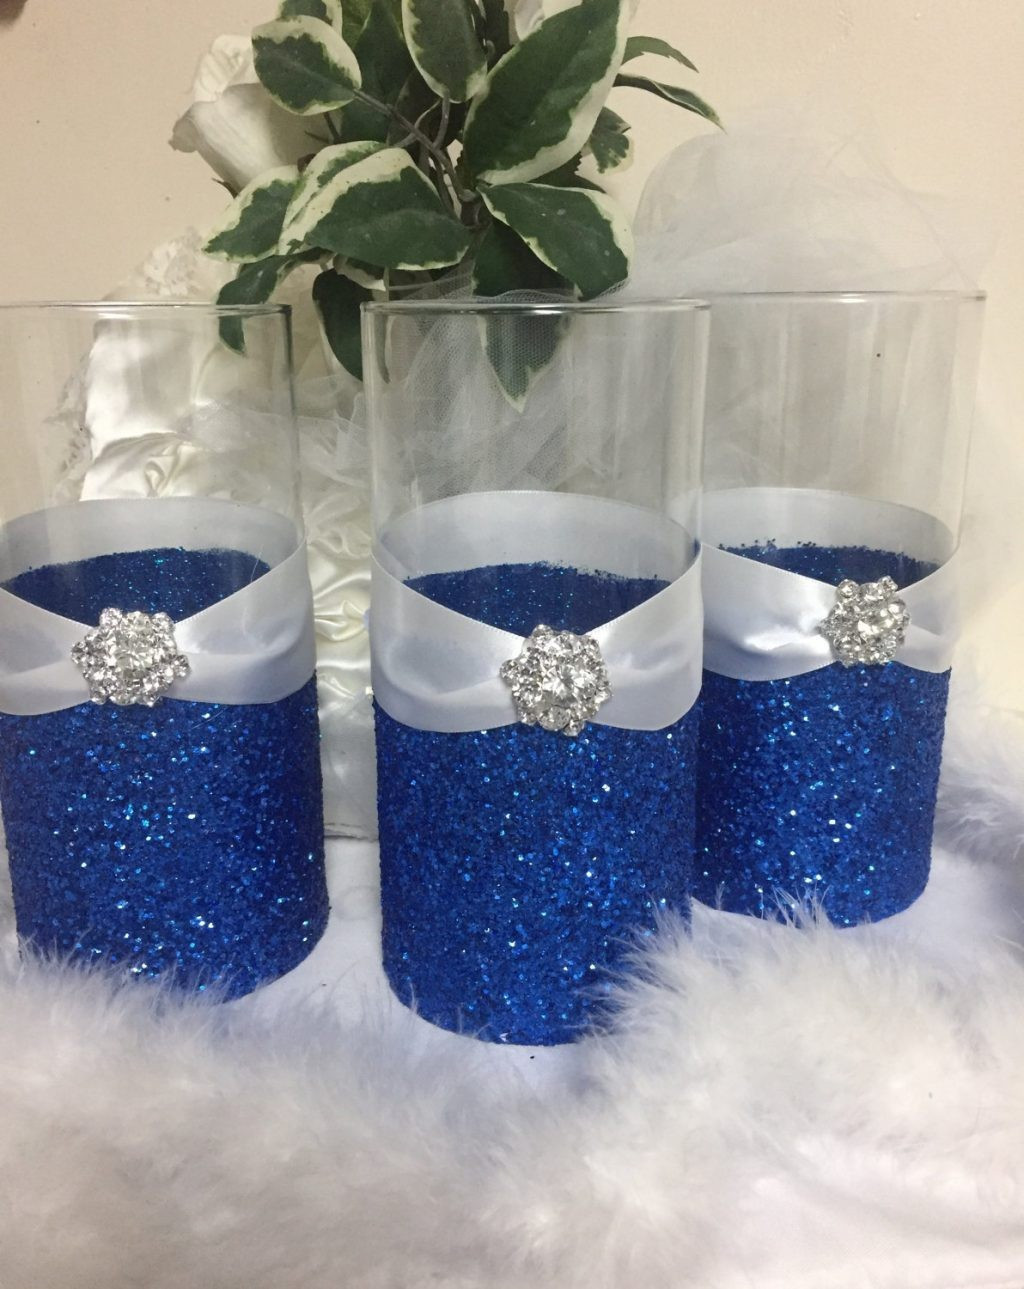 mirrored glass square vases of wedding decorations centerpieces beautiful tallh vases glitter vase regarding wedding decorations centerpieces beautiful tallh vases glitter vase centerpiece diy vasei 0d ball for design